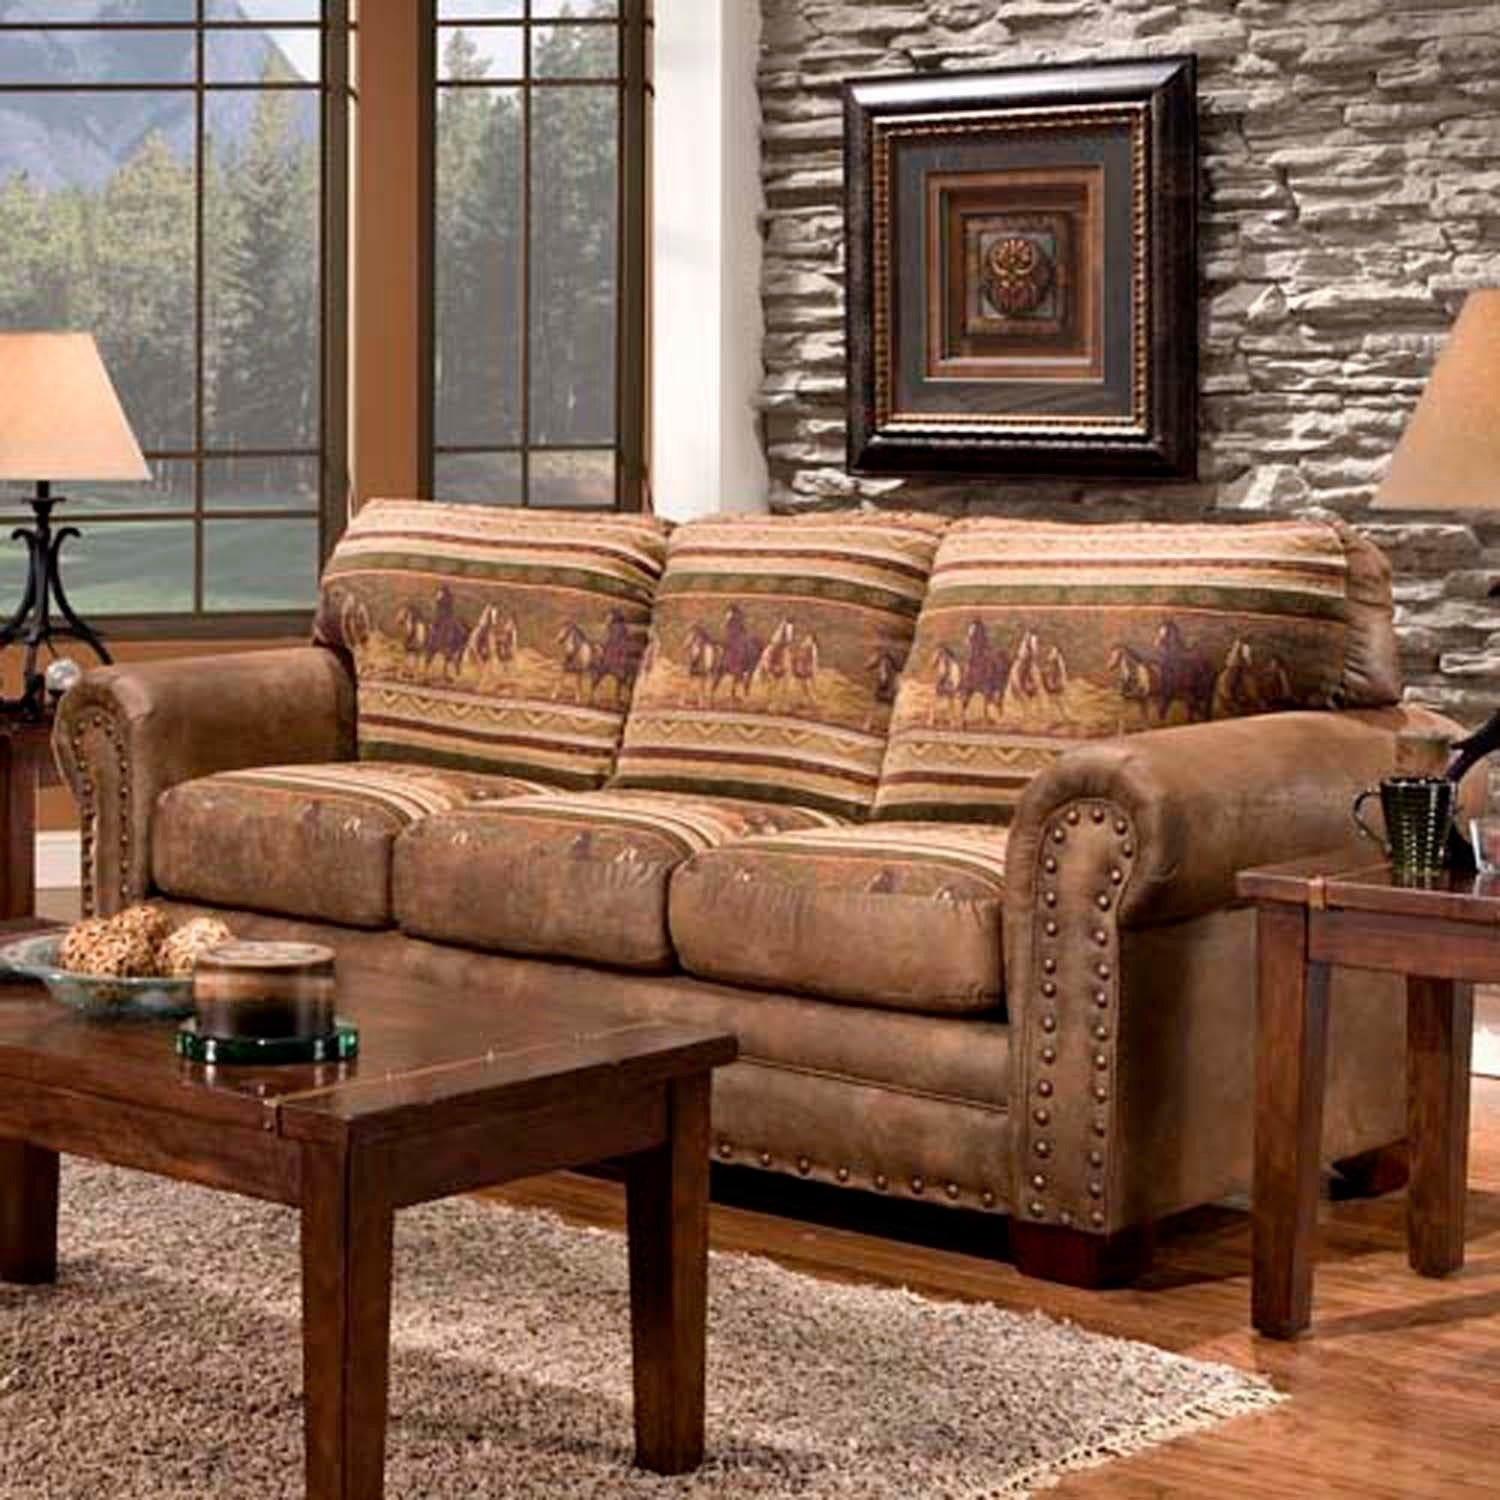 Wild Horses Lodge Sleeper Sofa Free Shipping Today 9231727